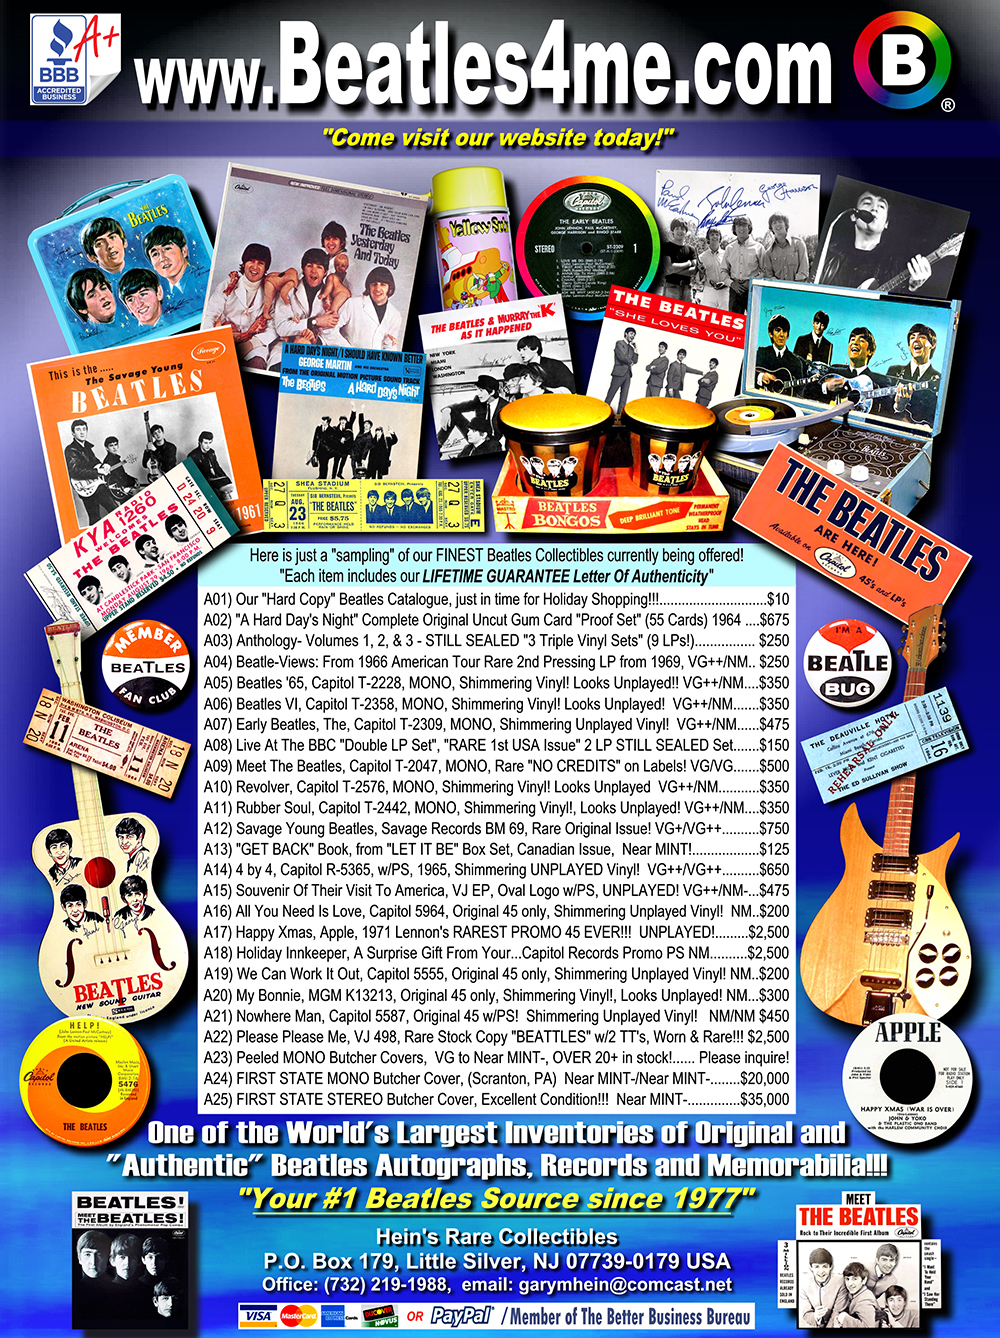 Shop Beatles Vinyl for sale, Beatles Records, Beatles Memorabilia, Beatles Collectibles and Beatles Butcher Covers @ Beatles Store Beatles4me.com!